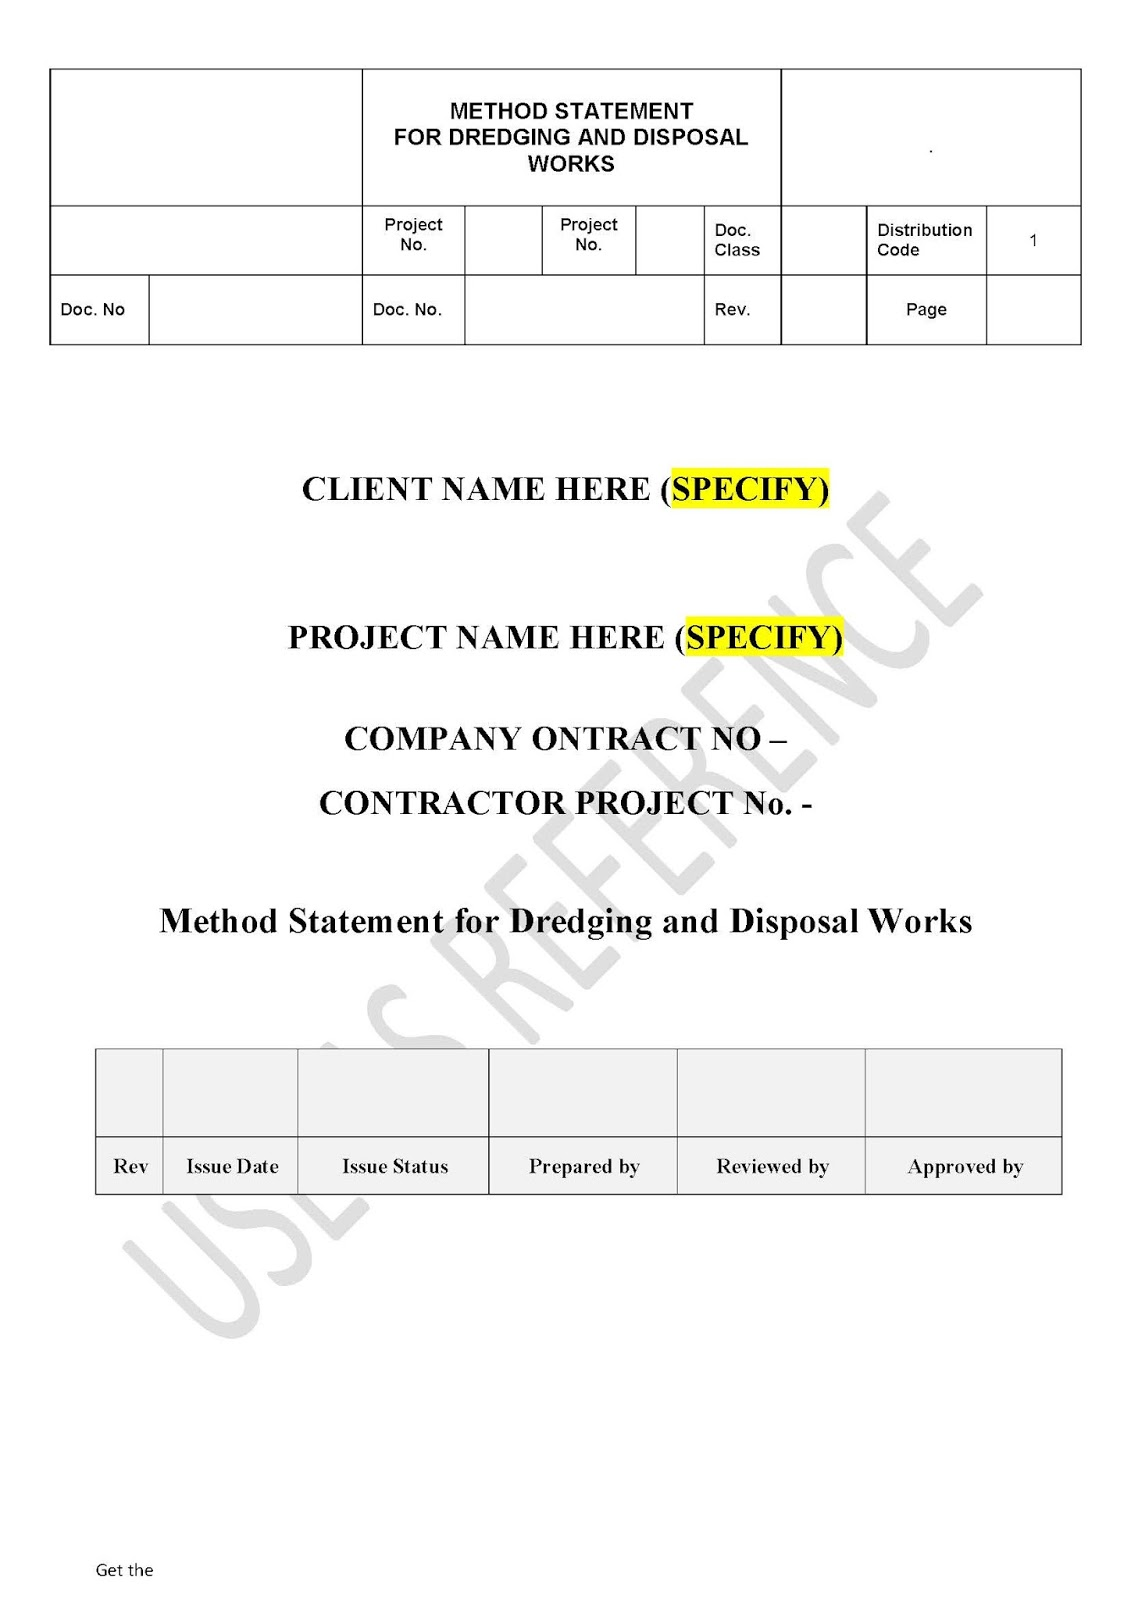 Work Method Statement Example blank invoice template doc agenda – Method Statement Template Doc